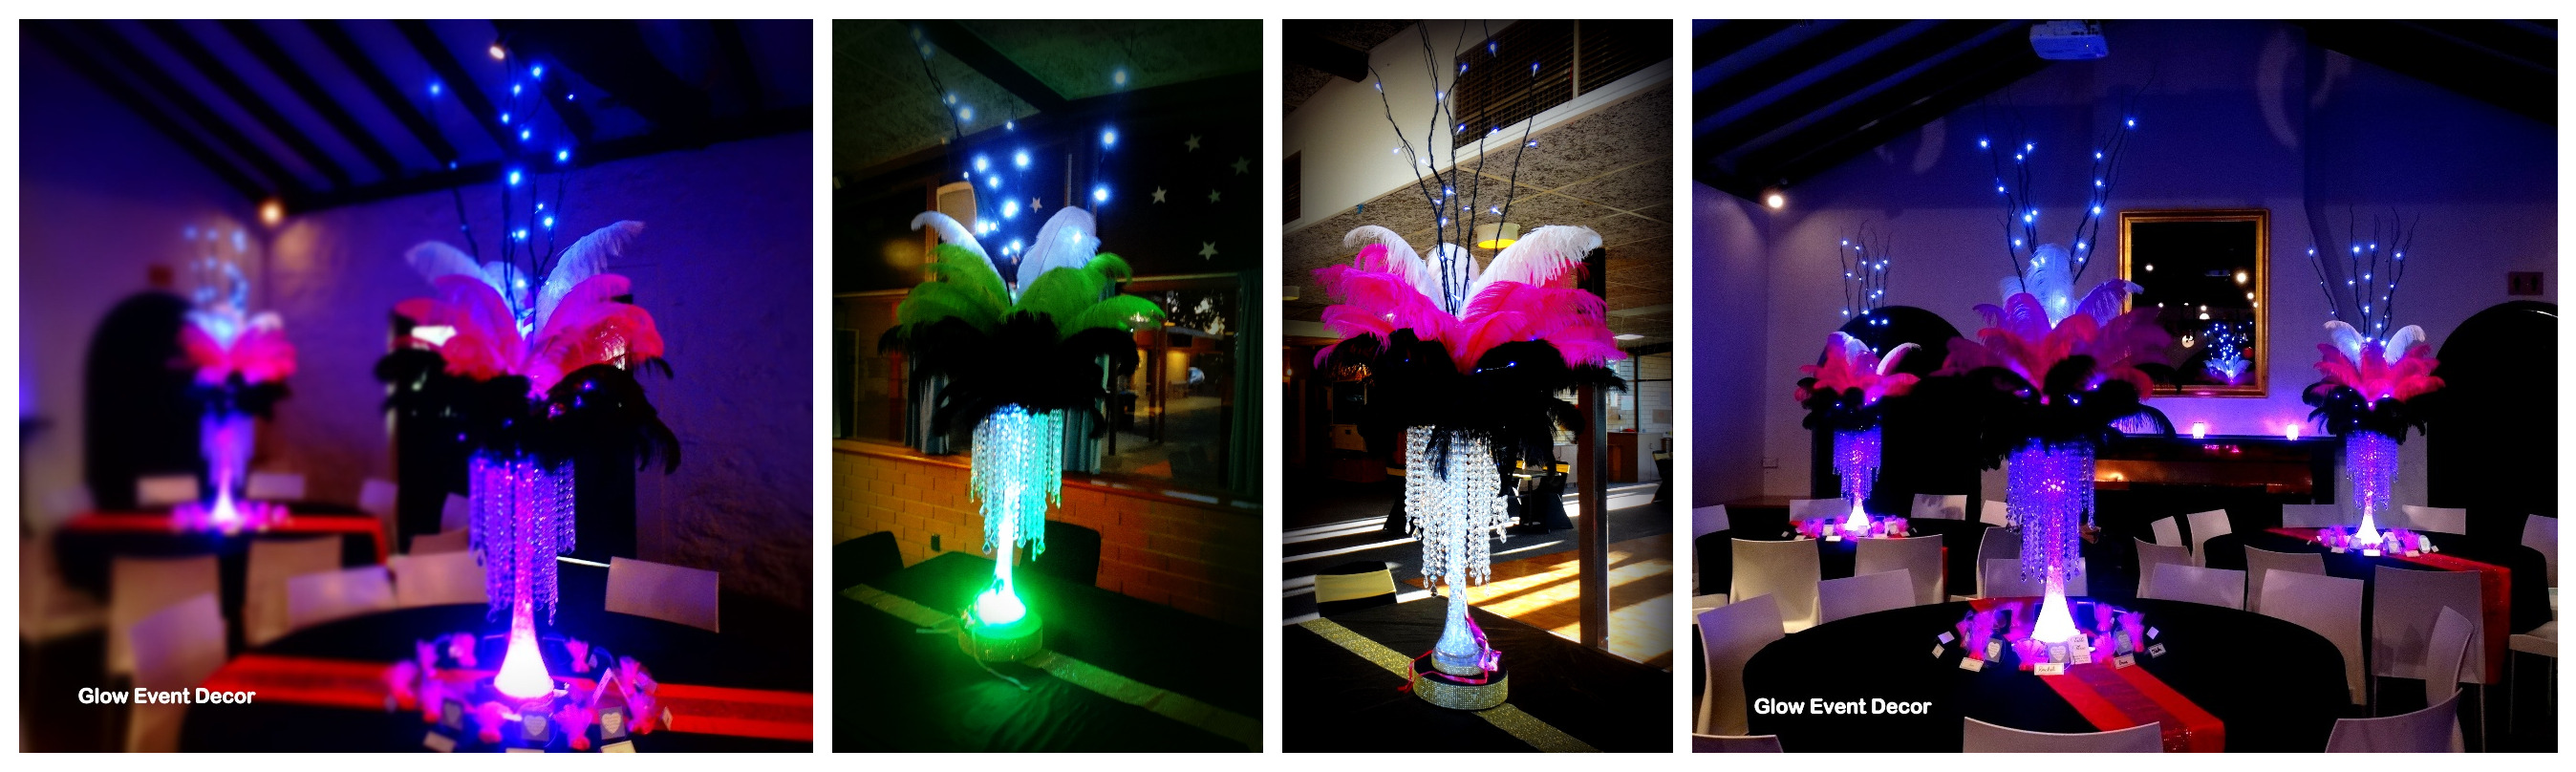 Ostrich Feathers Glow Event Decor